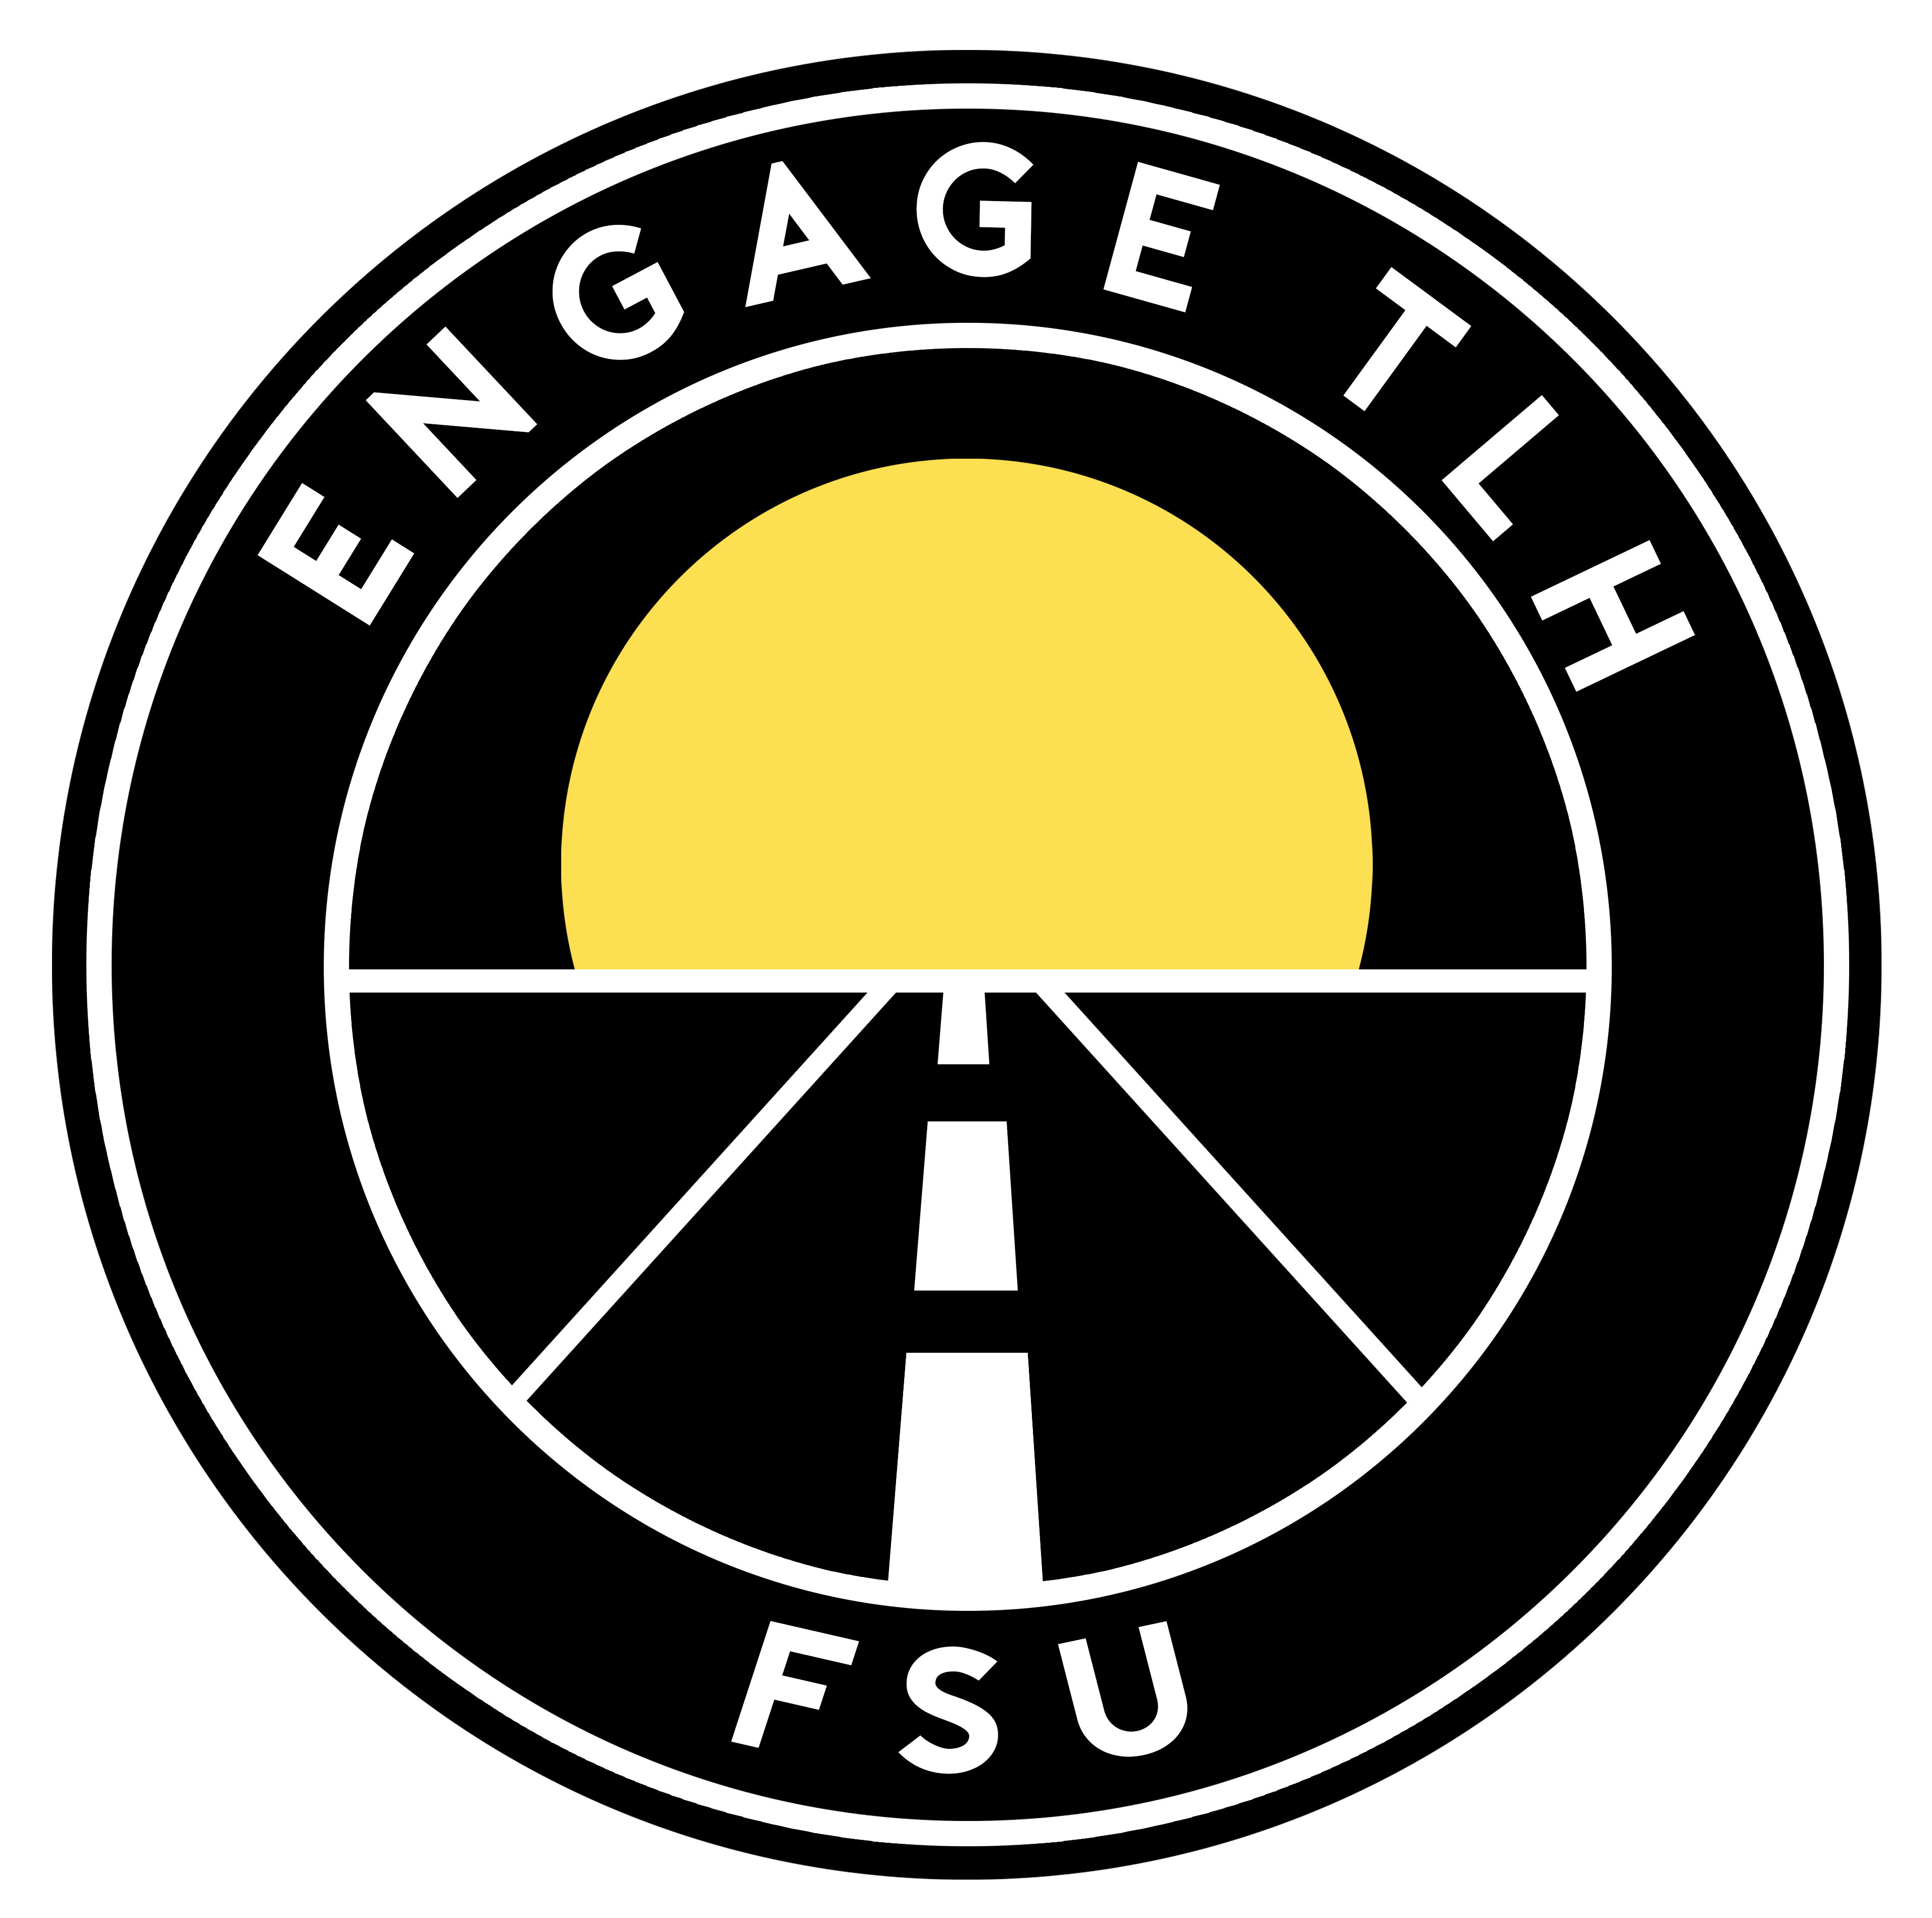 Circle graphic of a sunrise with a road stretching out towards it with the words EngageTLH and FSU above and below it